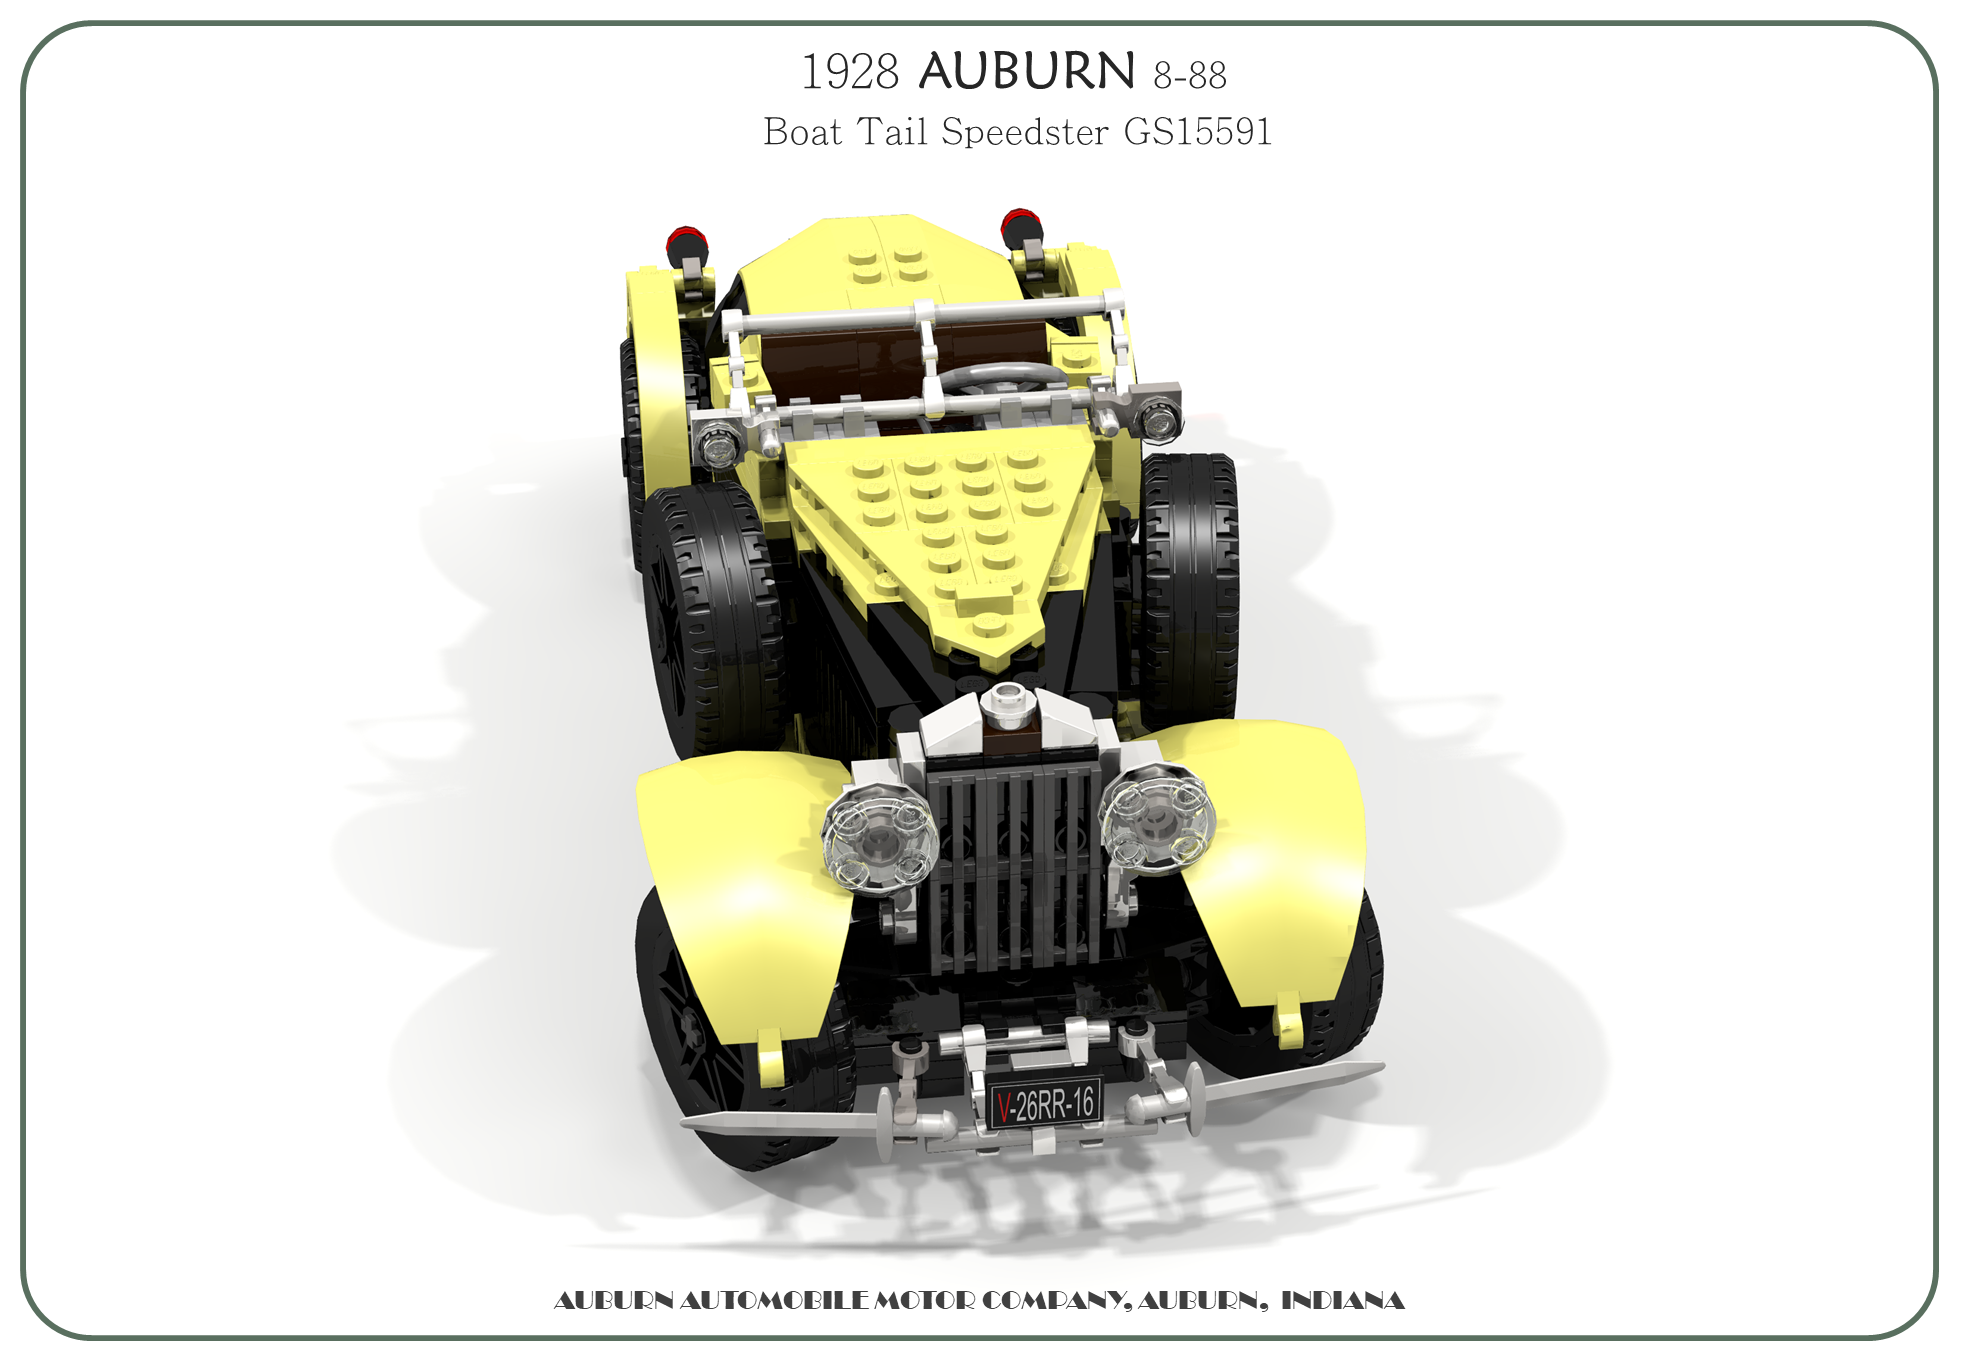 auburn_1928_8-88_boat-tail_speedster_03.png